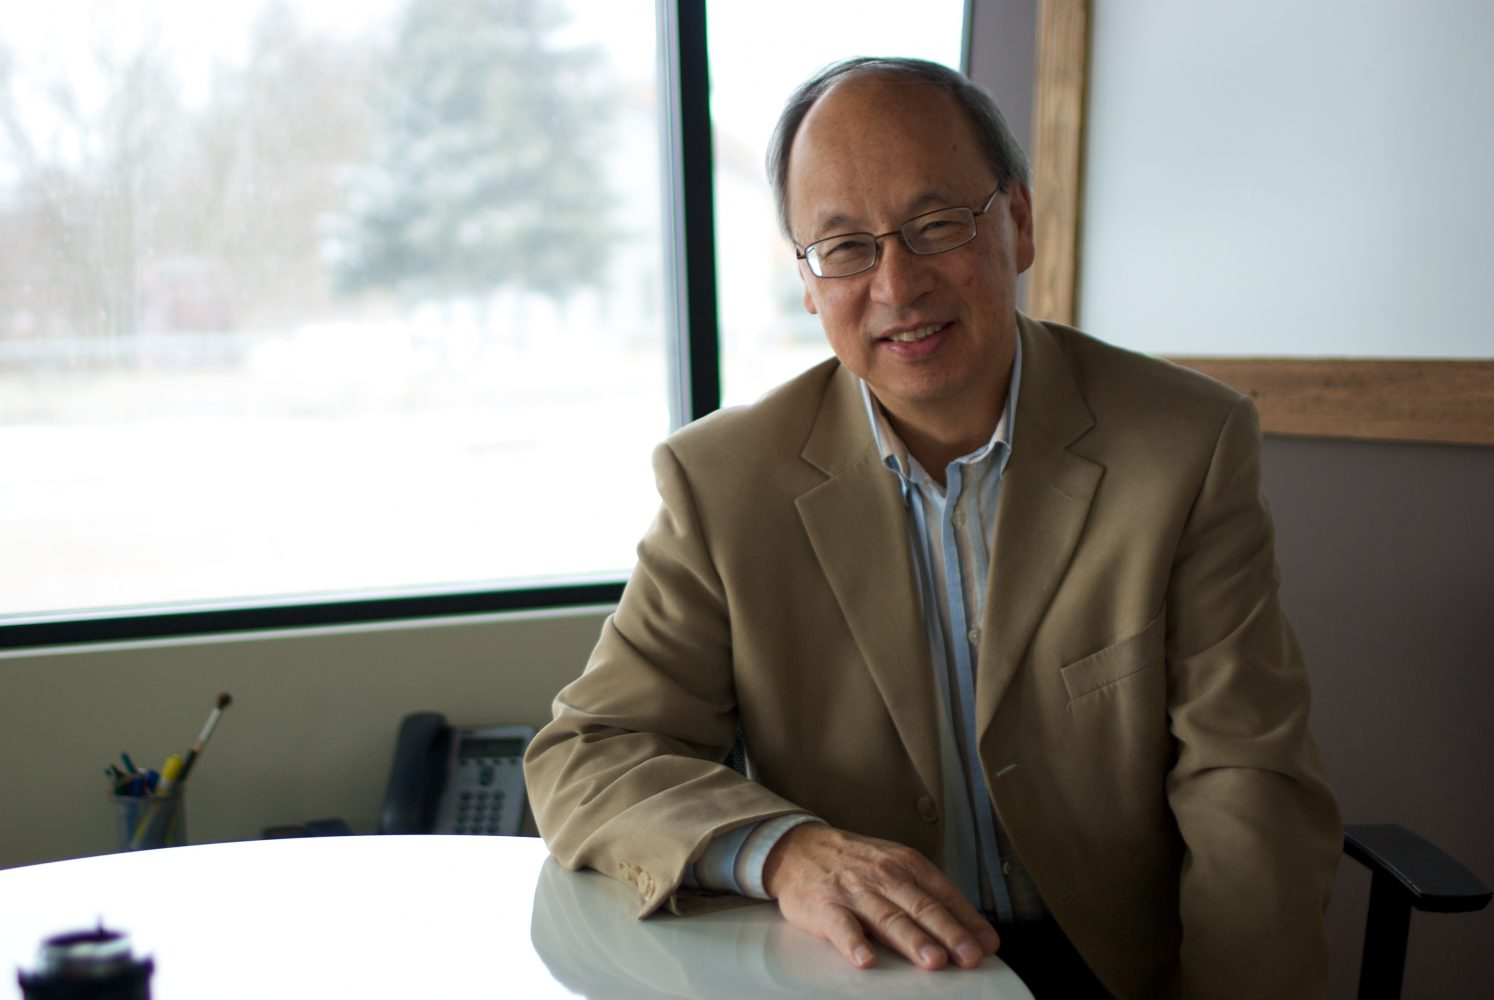 Bing Goei ran for the 75th District last election, and is hoping to take the 76th with a write-in campaign this year due to redistricting.  File photo